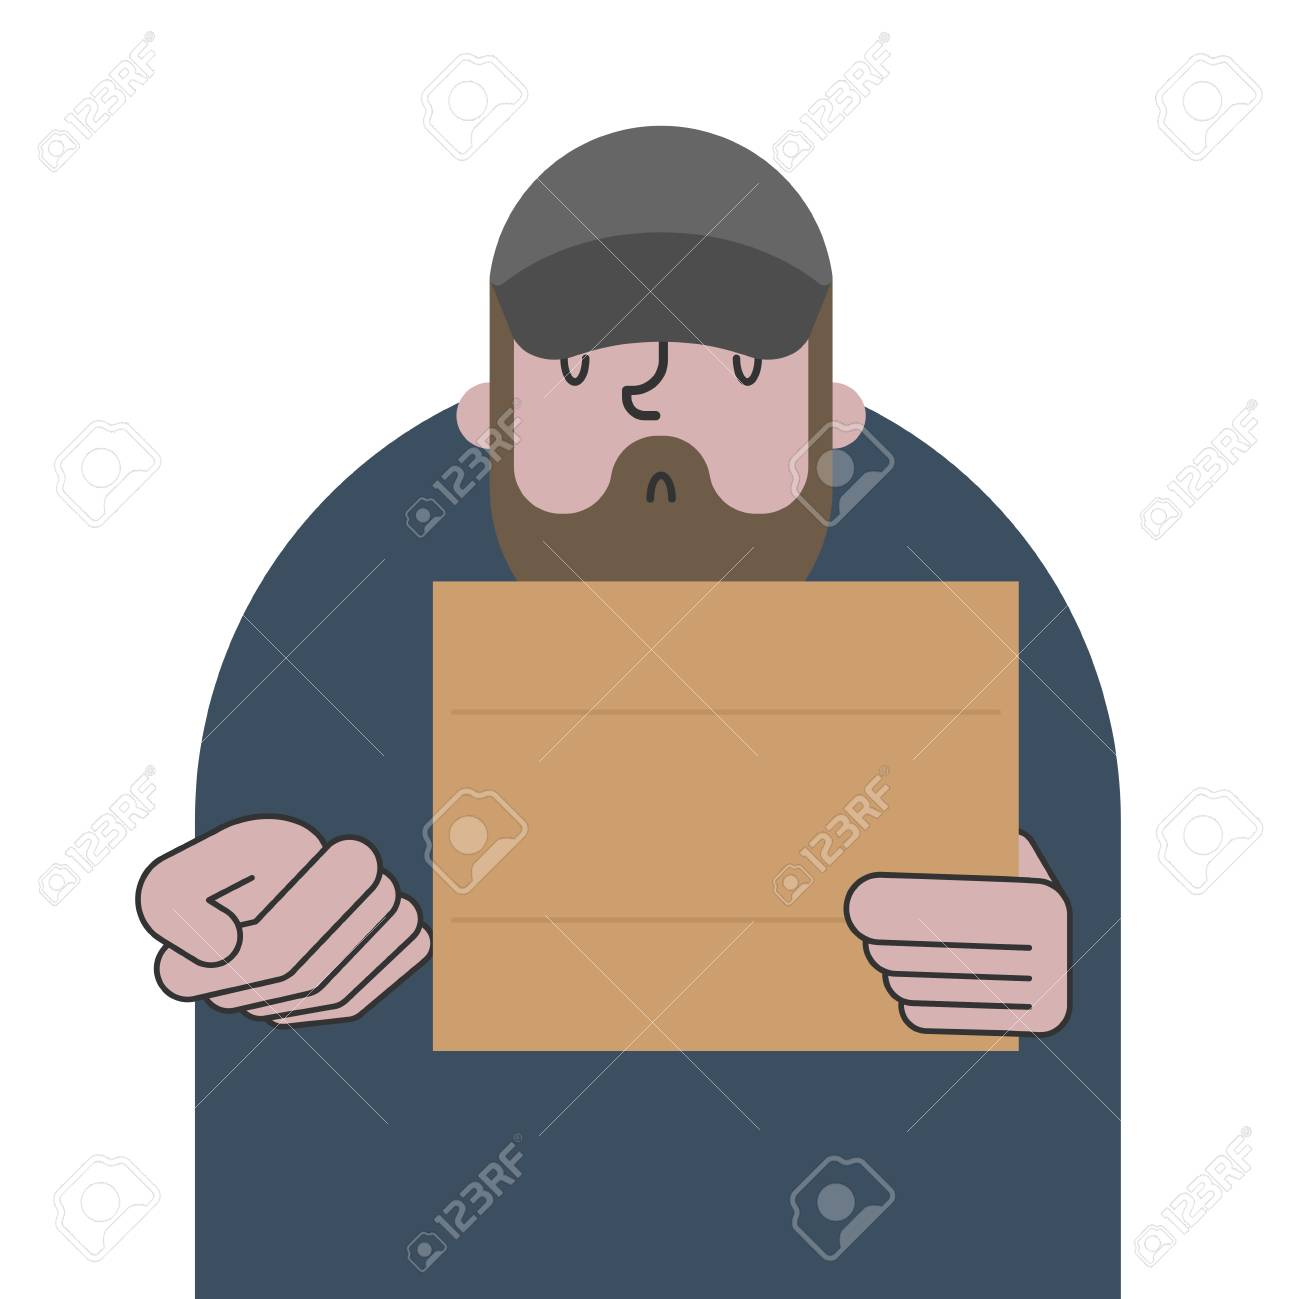 Homeless and cardboard. Beggars and blank plate, Poor. bum hobo Vector illustration - 112320981